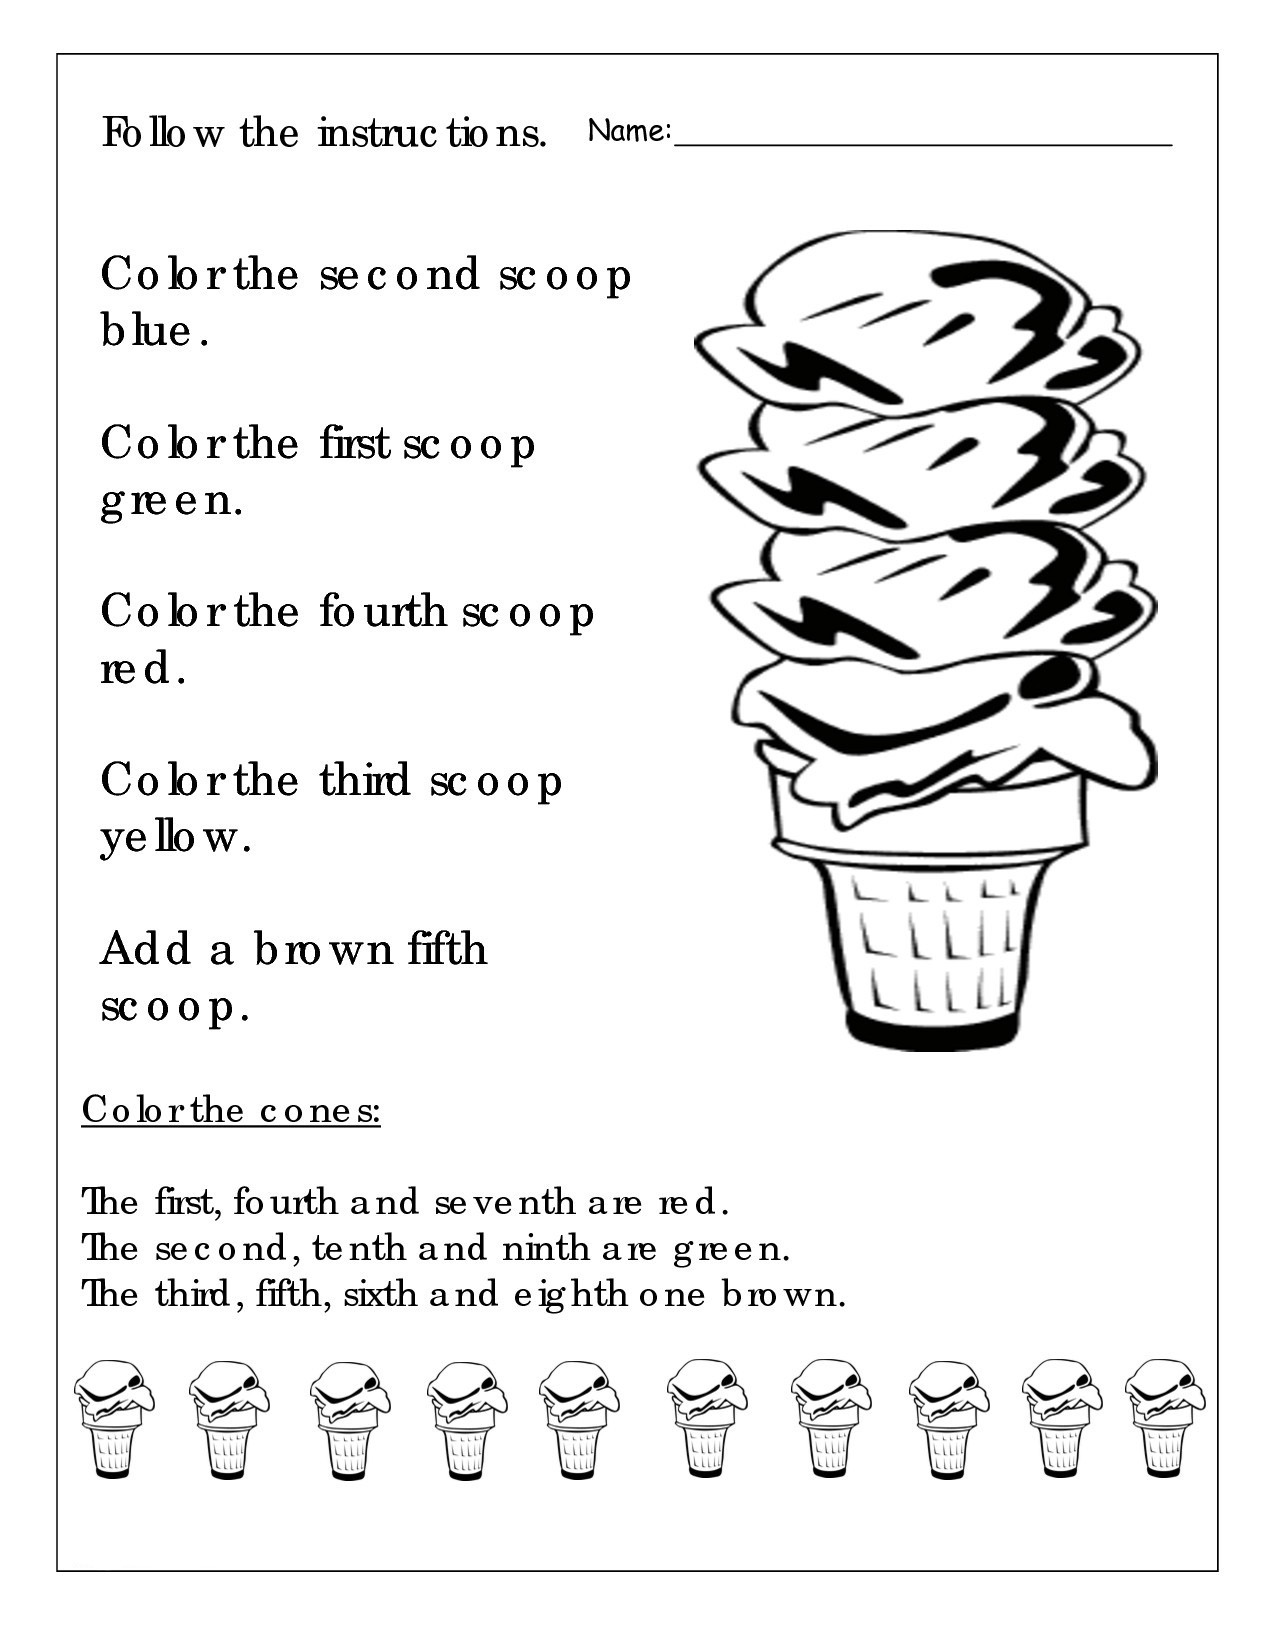 coloring activity for grade 1 first day of school first day of school activities grade 1 coloring grade for activity 1